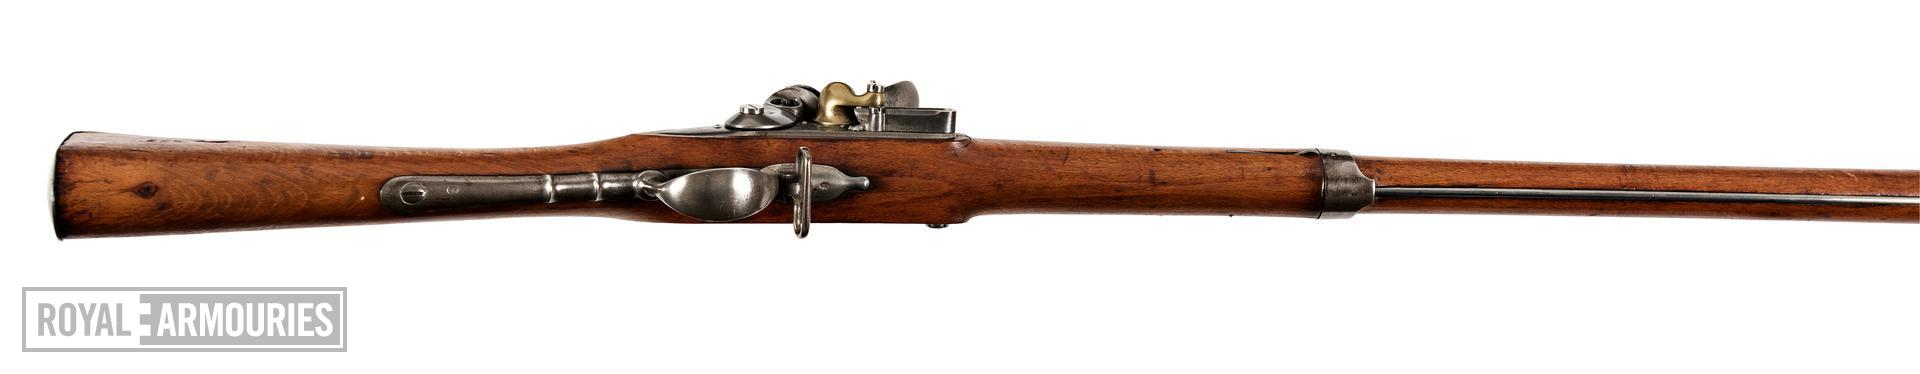 Flintlock muzzle-loading musket - Model 1777 An. IX Dragoon Musket Issued to the Dragoons, Voltigeurs,Artillery, Navy and the National Guard. Occassionally used by the Carabineers and Horse Grenadiers.